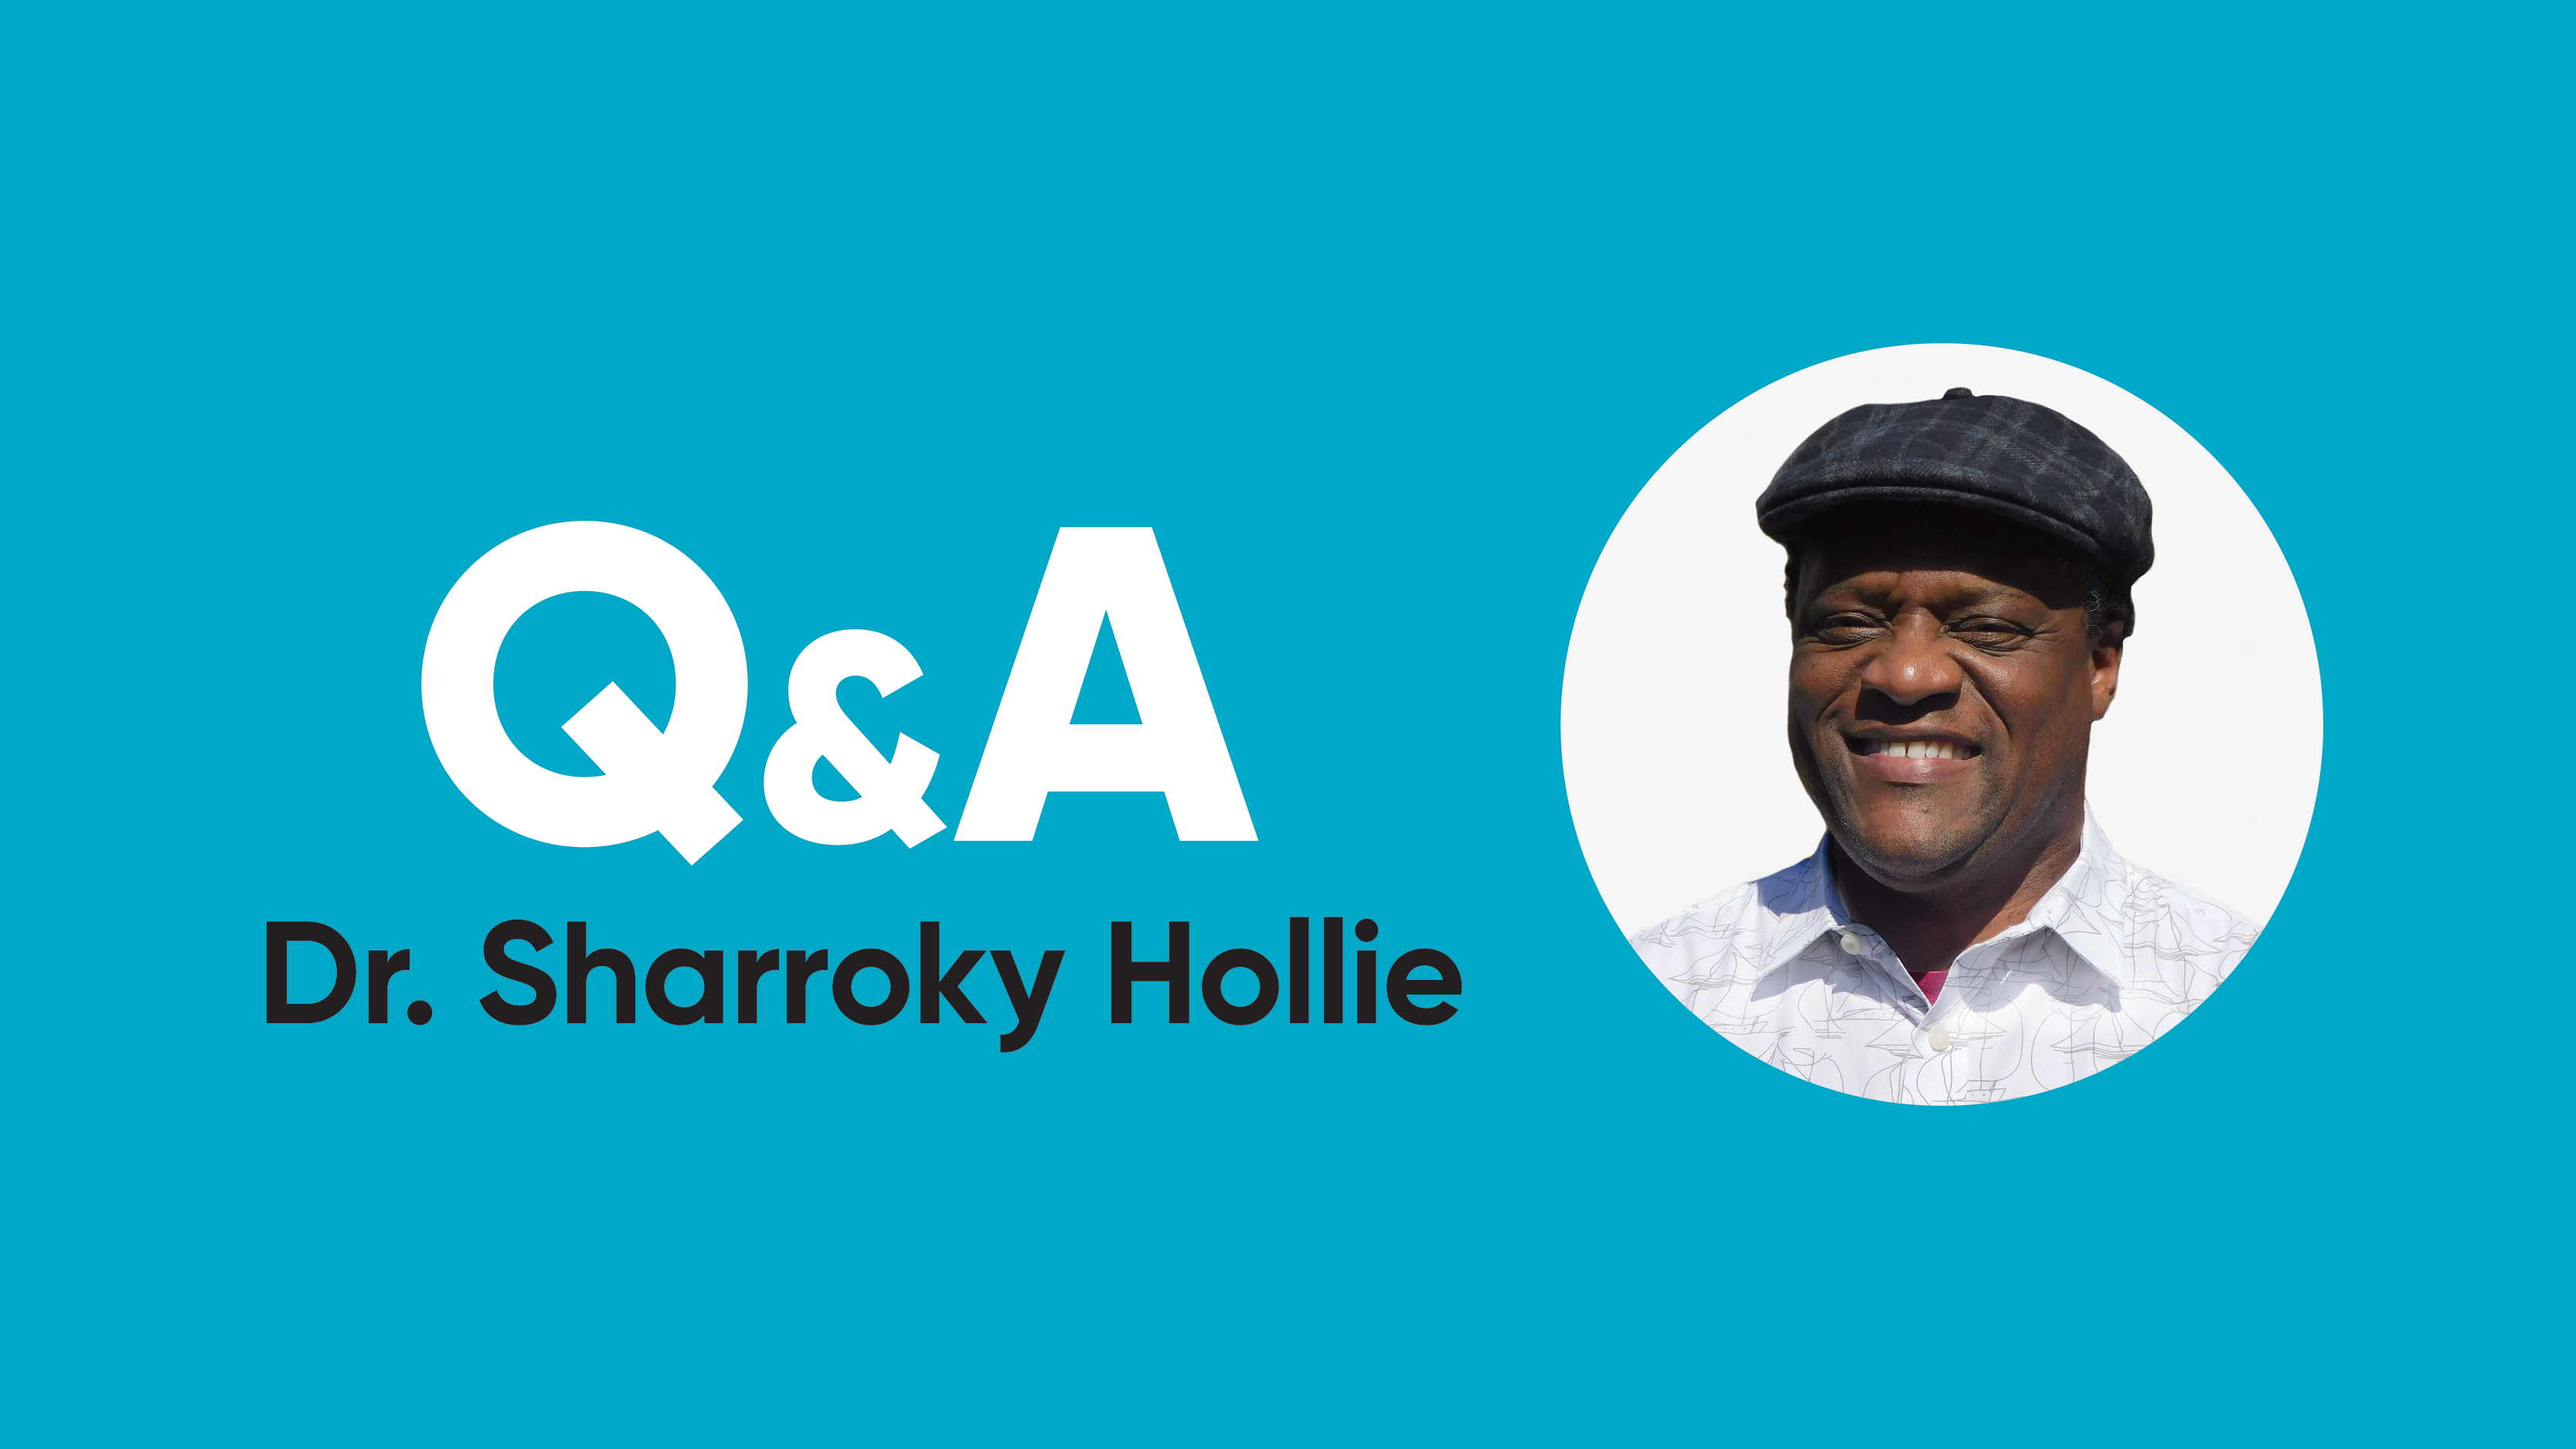 Culturally and Linguistically Responsive Teaching: Q&A with Dr. Sharroky Hollie